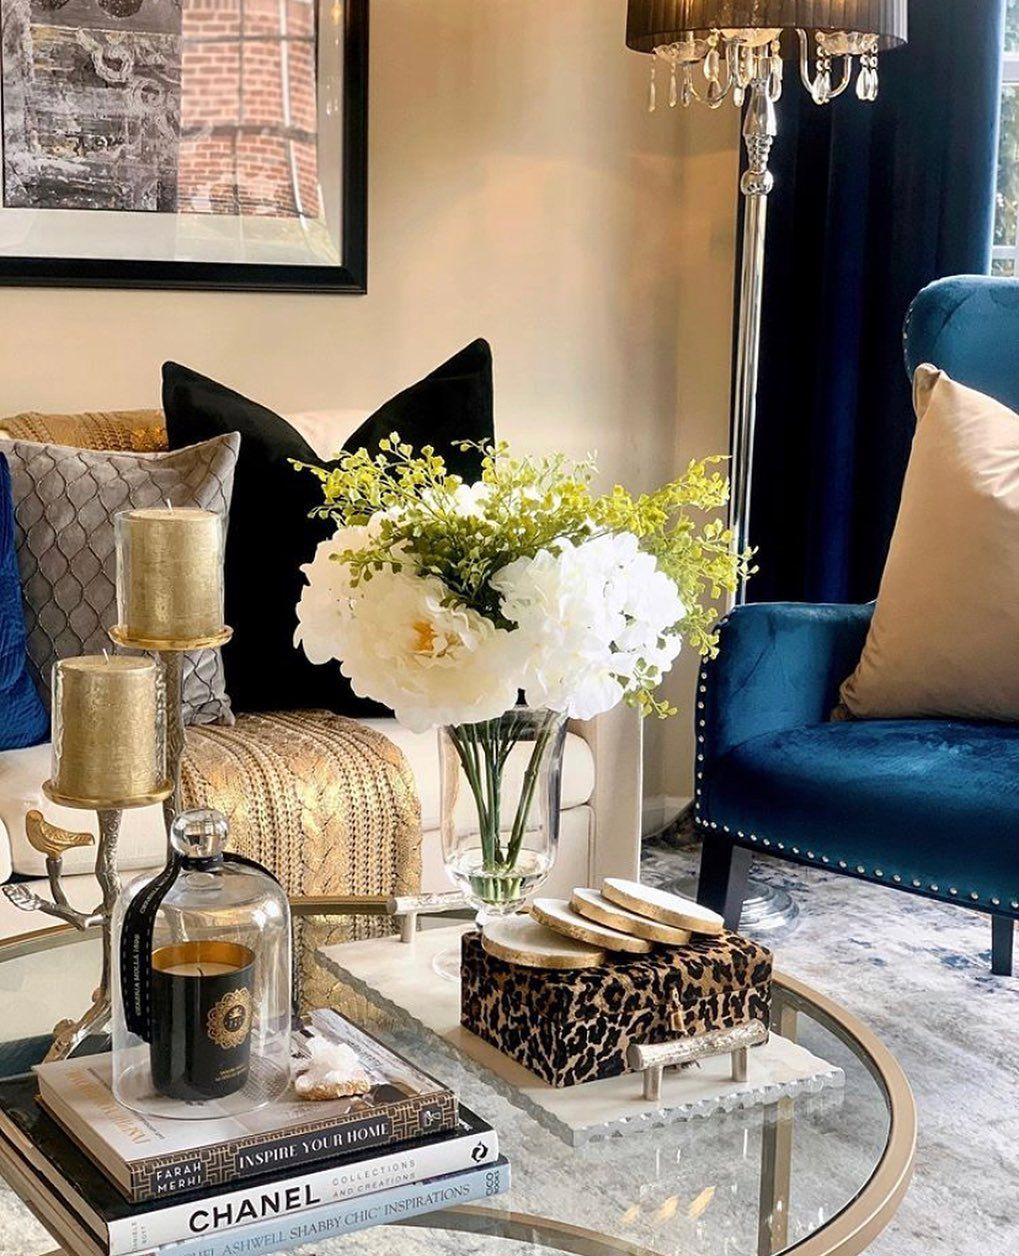 Inspire Me Home Decor On Instagram Farahjmerhi S Book Inspire Your Home Looks Perfect On Noorofmyhome S Beautifull Decor Inspire Me Home Decor Home Decor Inspire me home decor living room gif